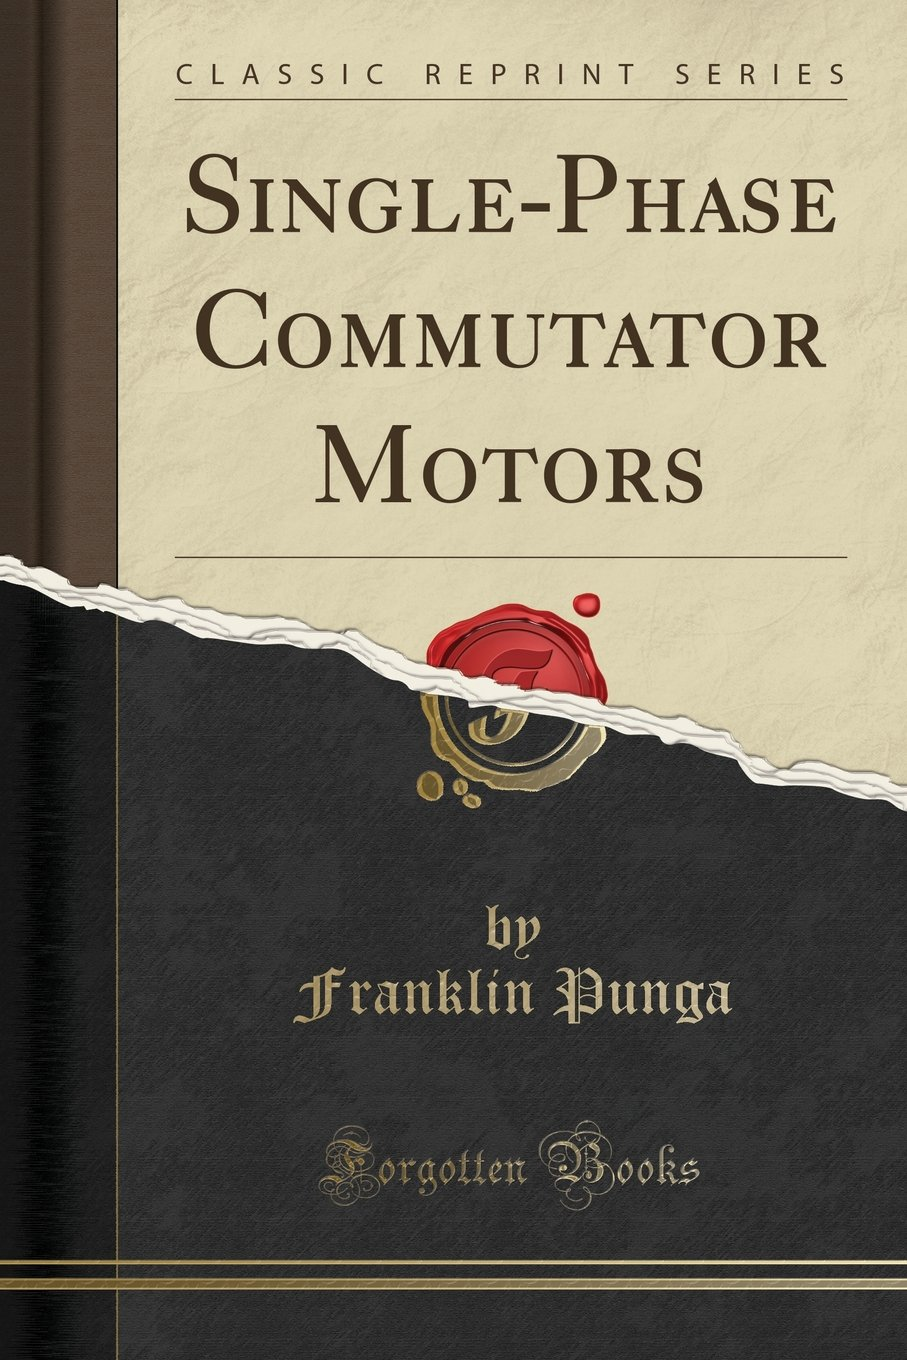 Single-Phase Commutator Motors (Classic Reprint) Paperback – September 16, 2017